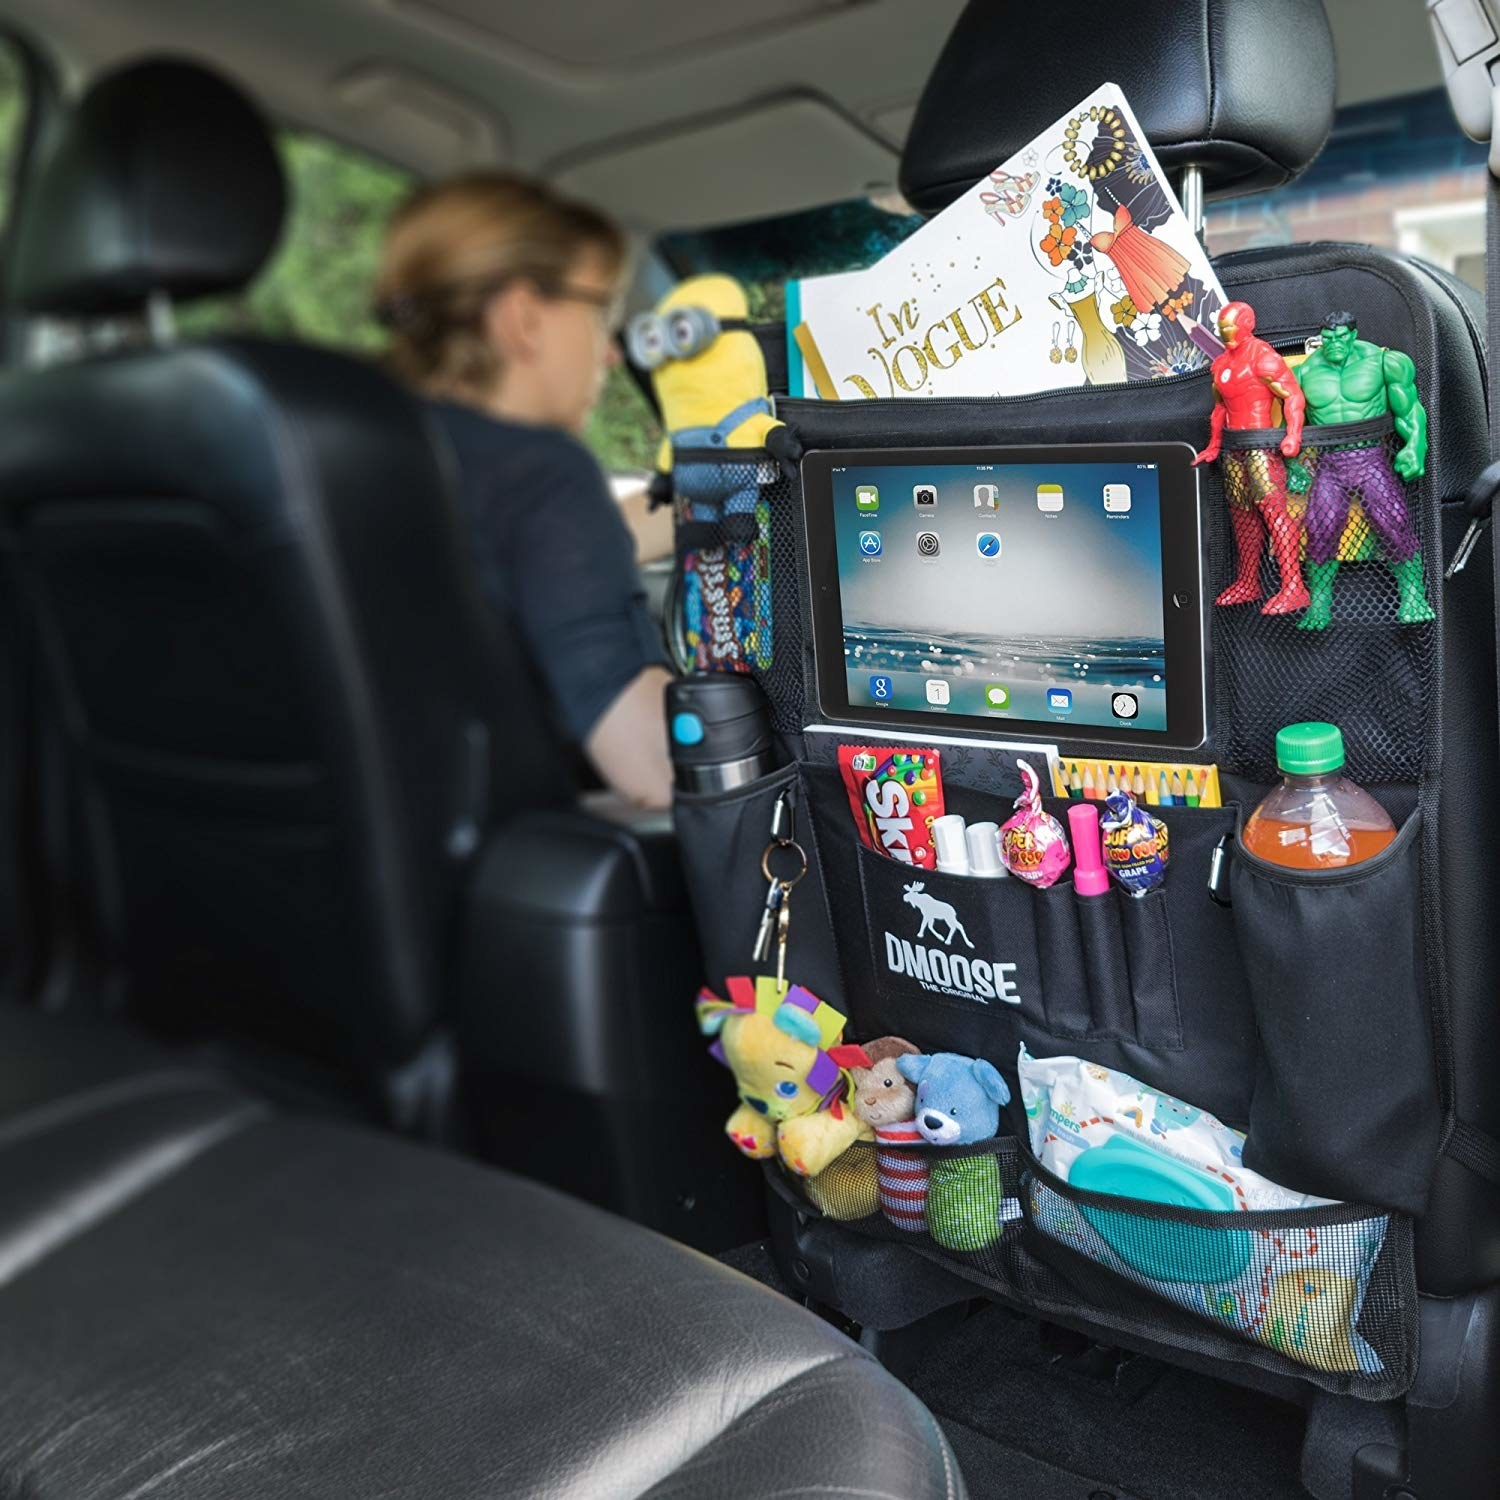 A back seat organizer with toys, wipes, an iPad, books, etc.